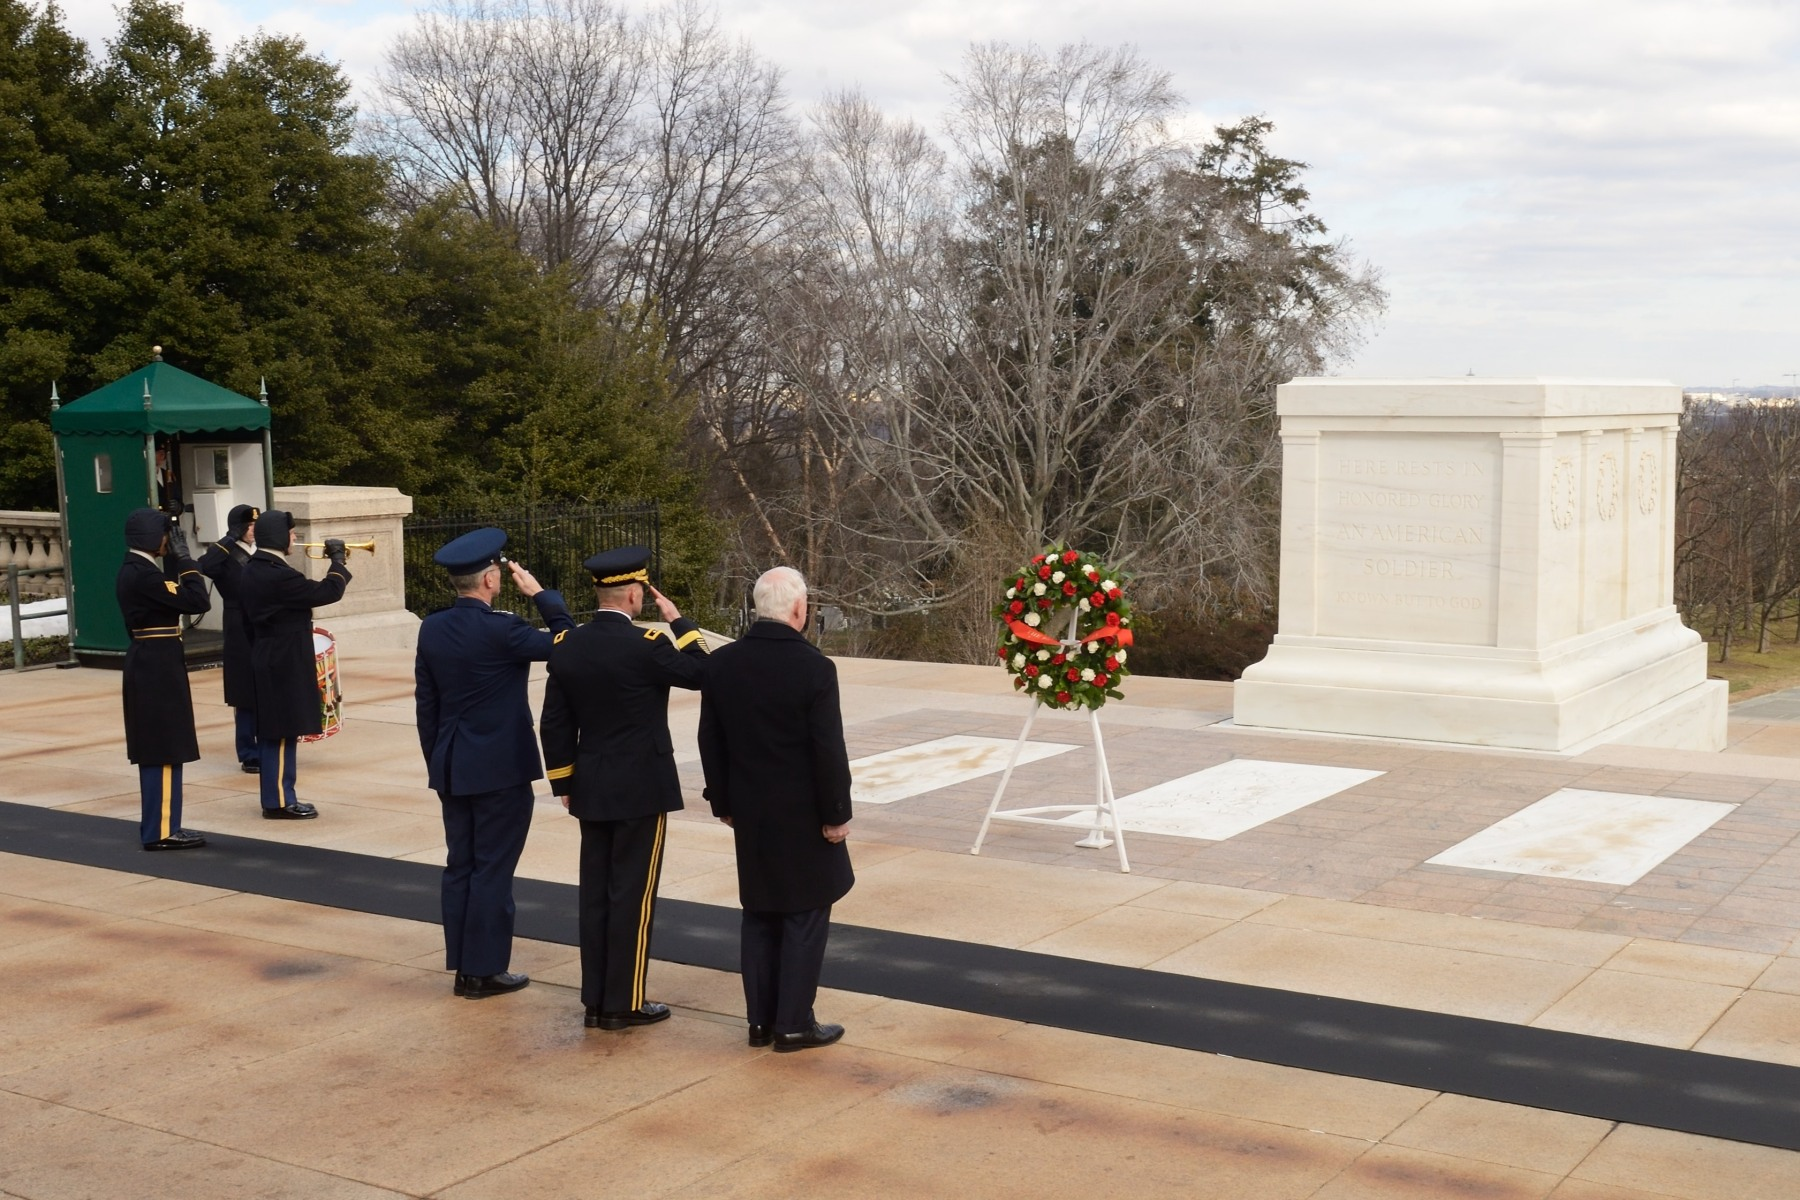 At Arlington National Cemetery, the Governor General laid a wreath at the Tomb of the Unknown Soldier.